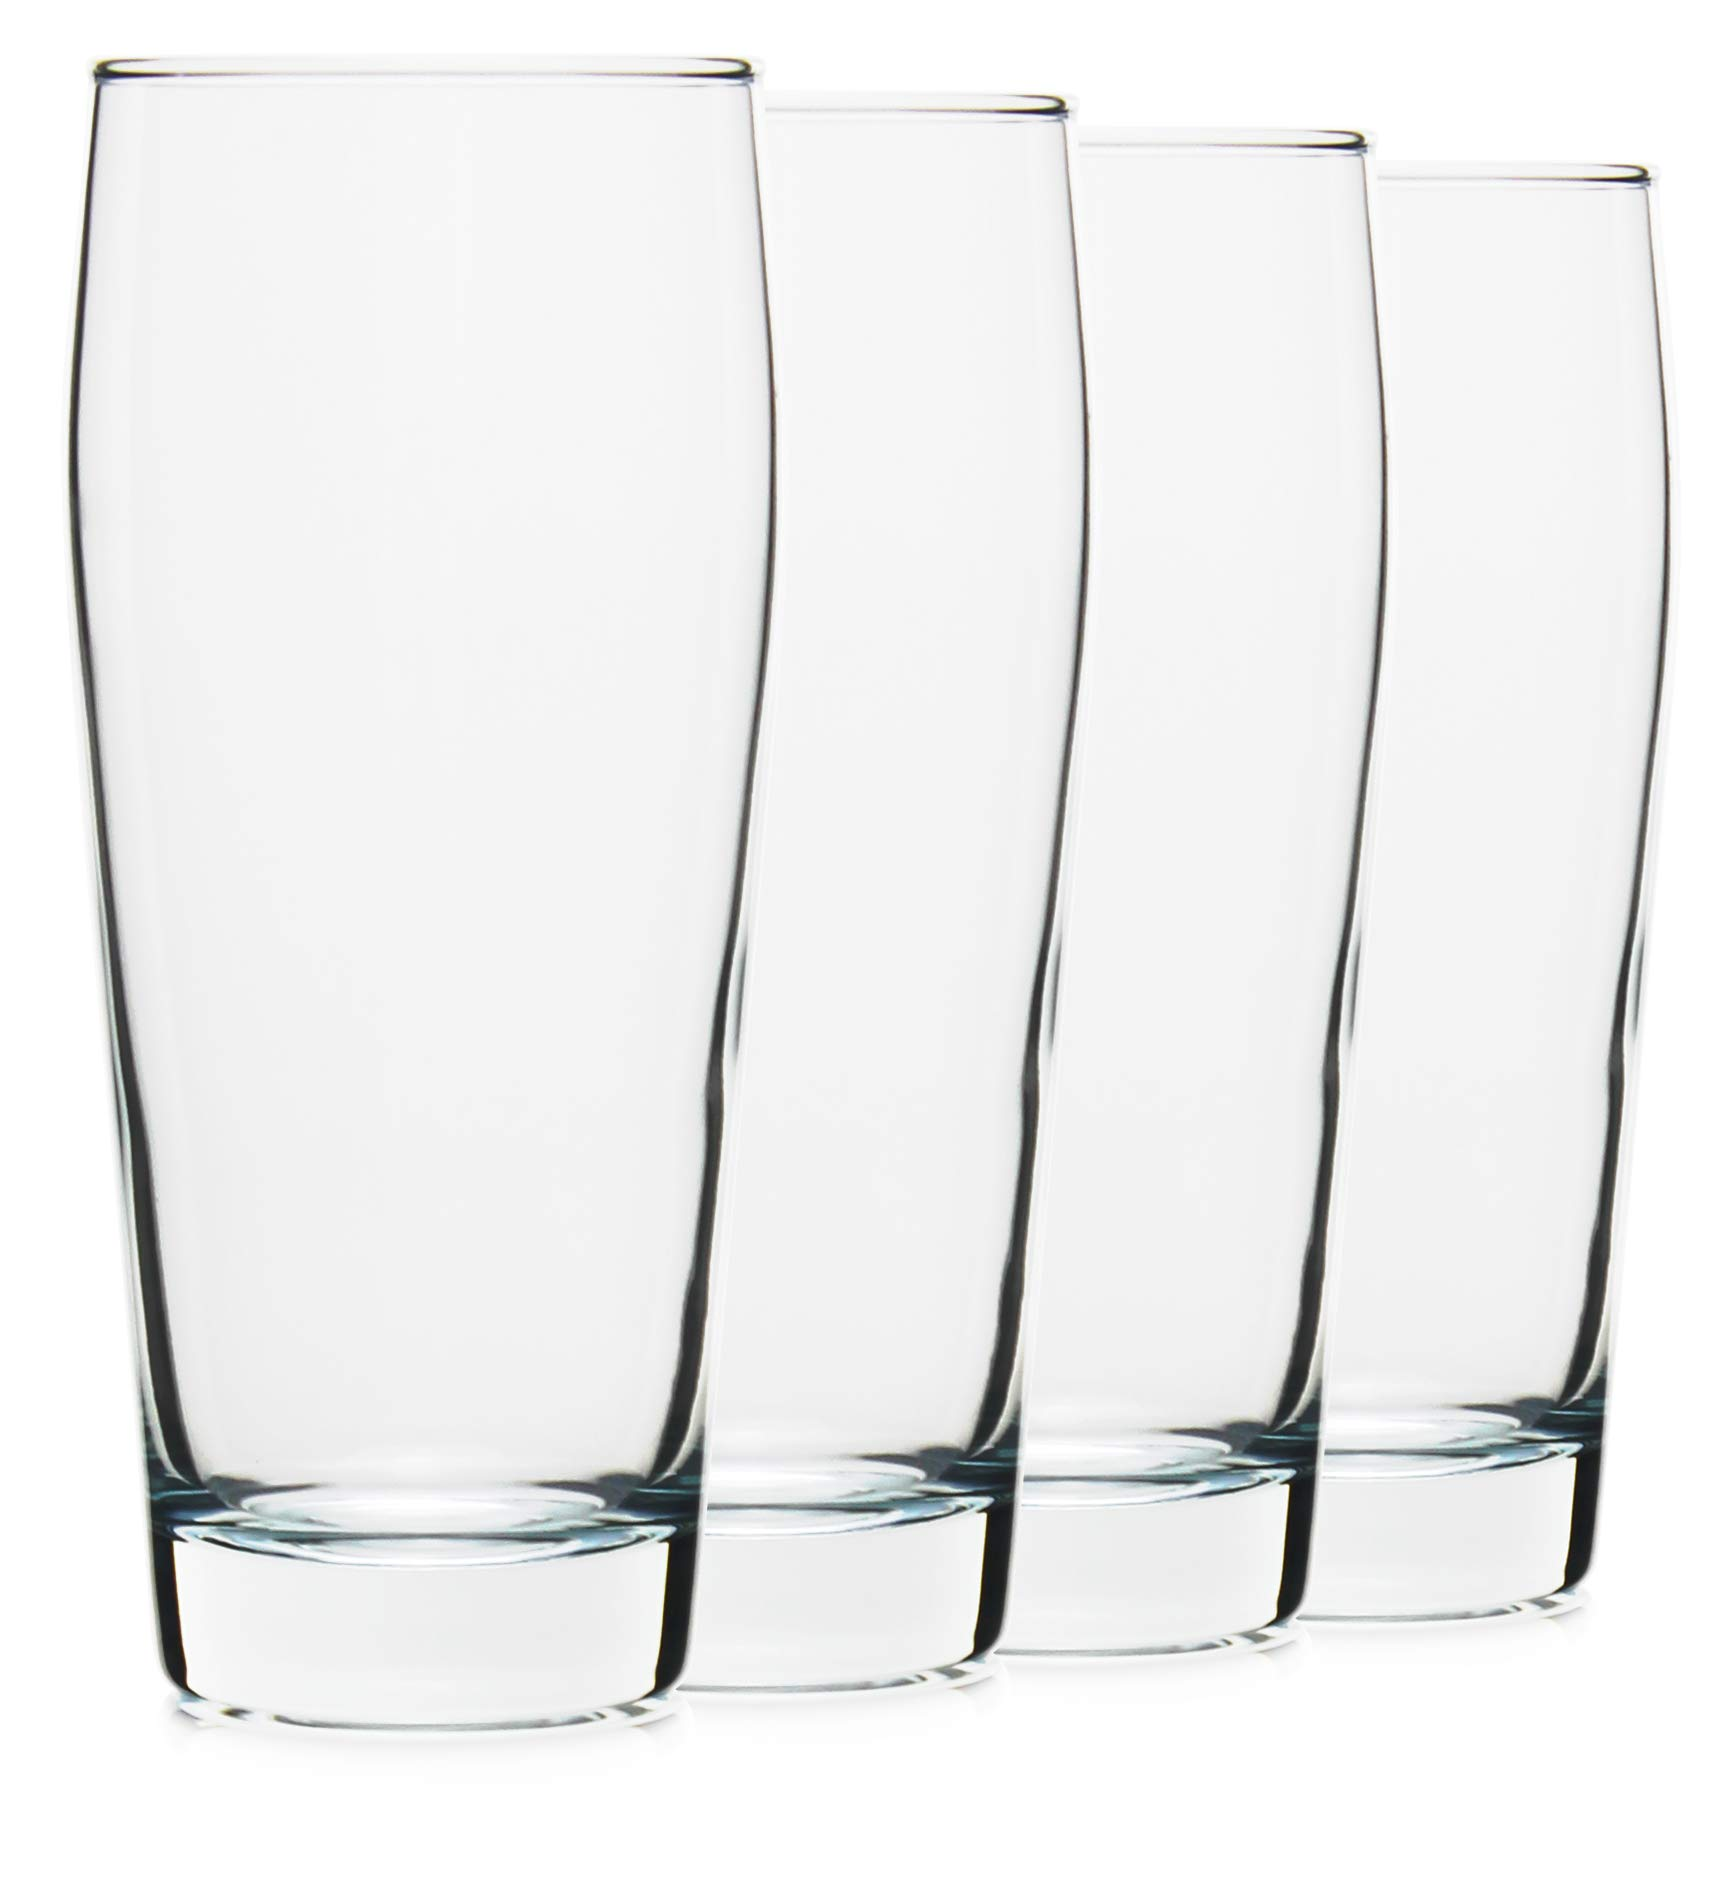 20oz Craft Pub Beer Glasses Made in the USA, Set of 4 by Serami